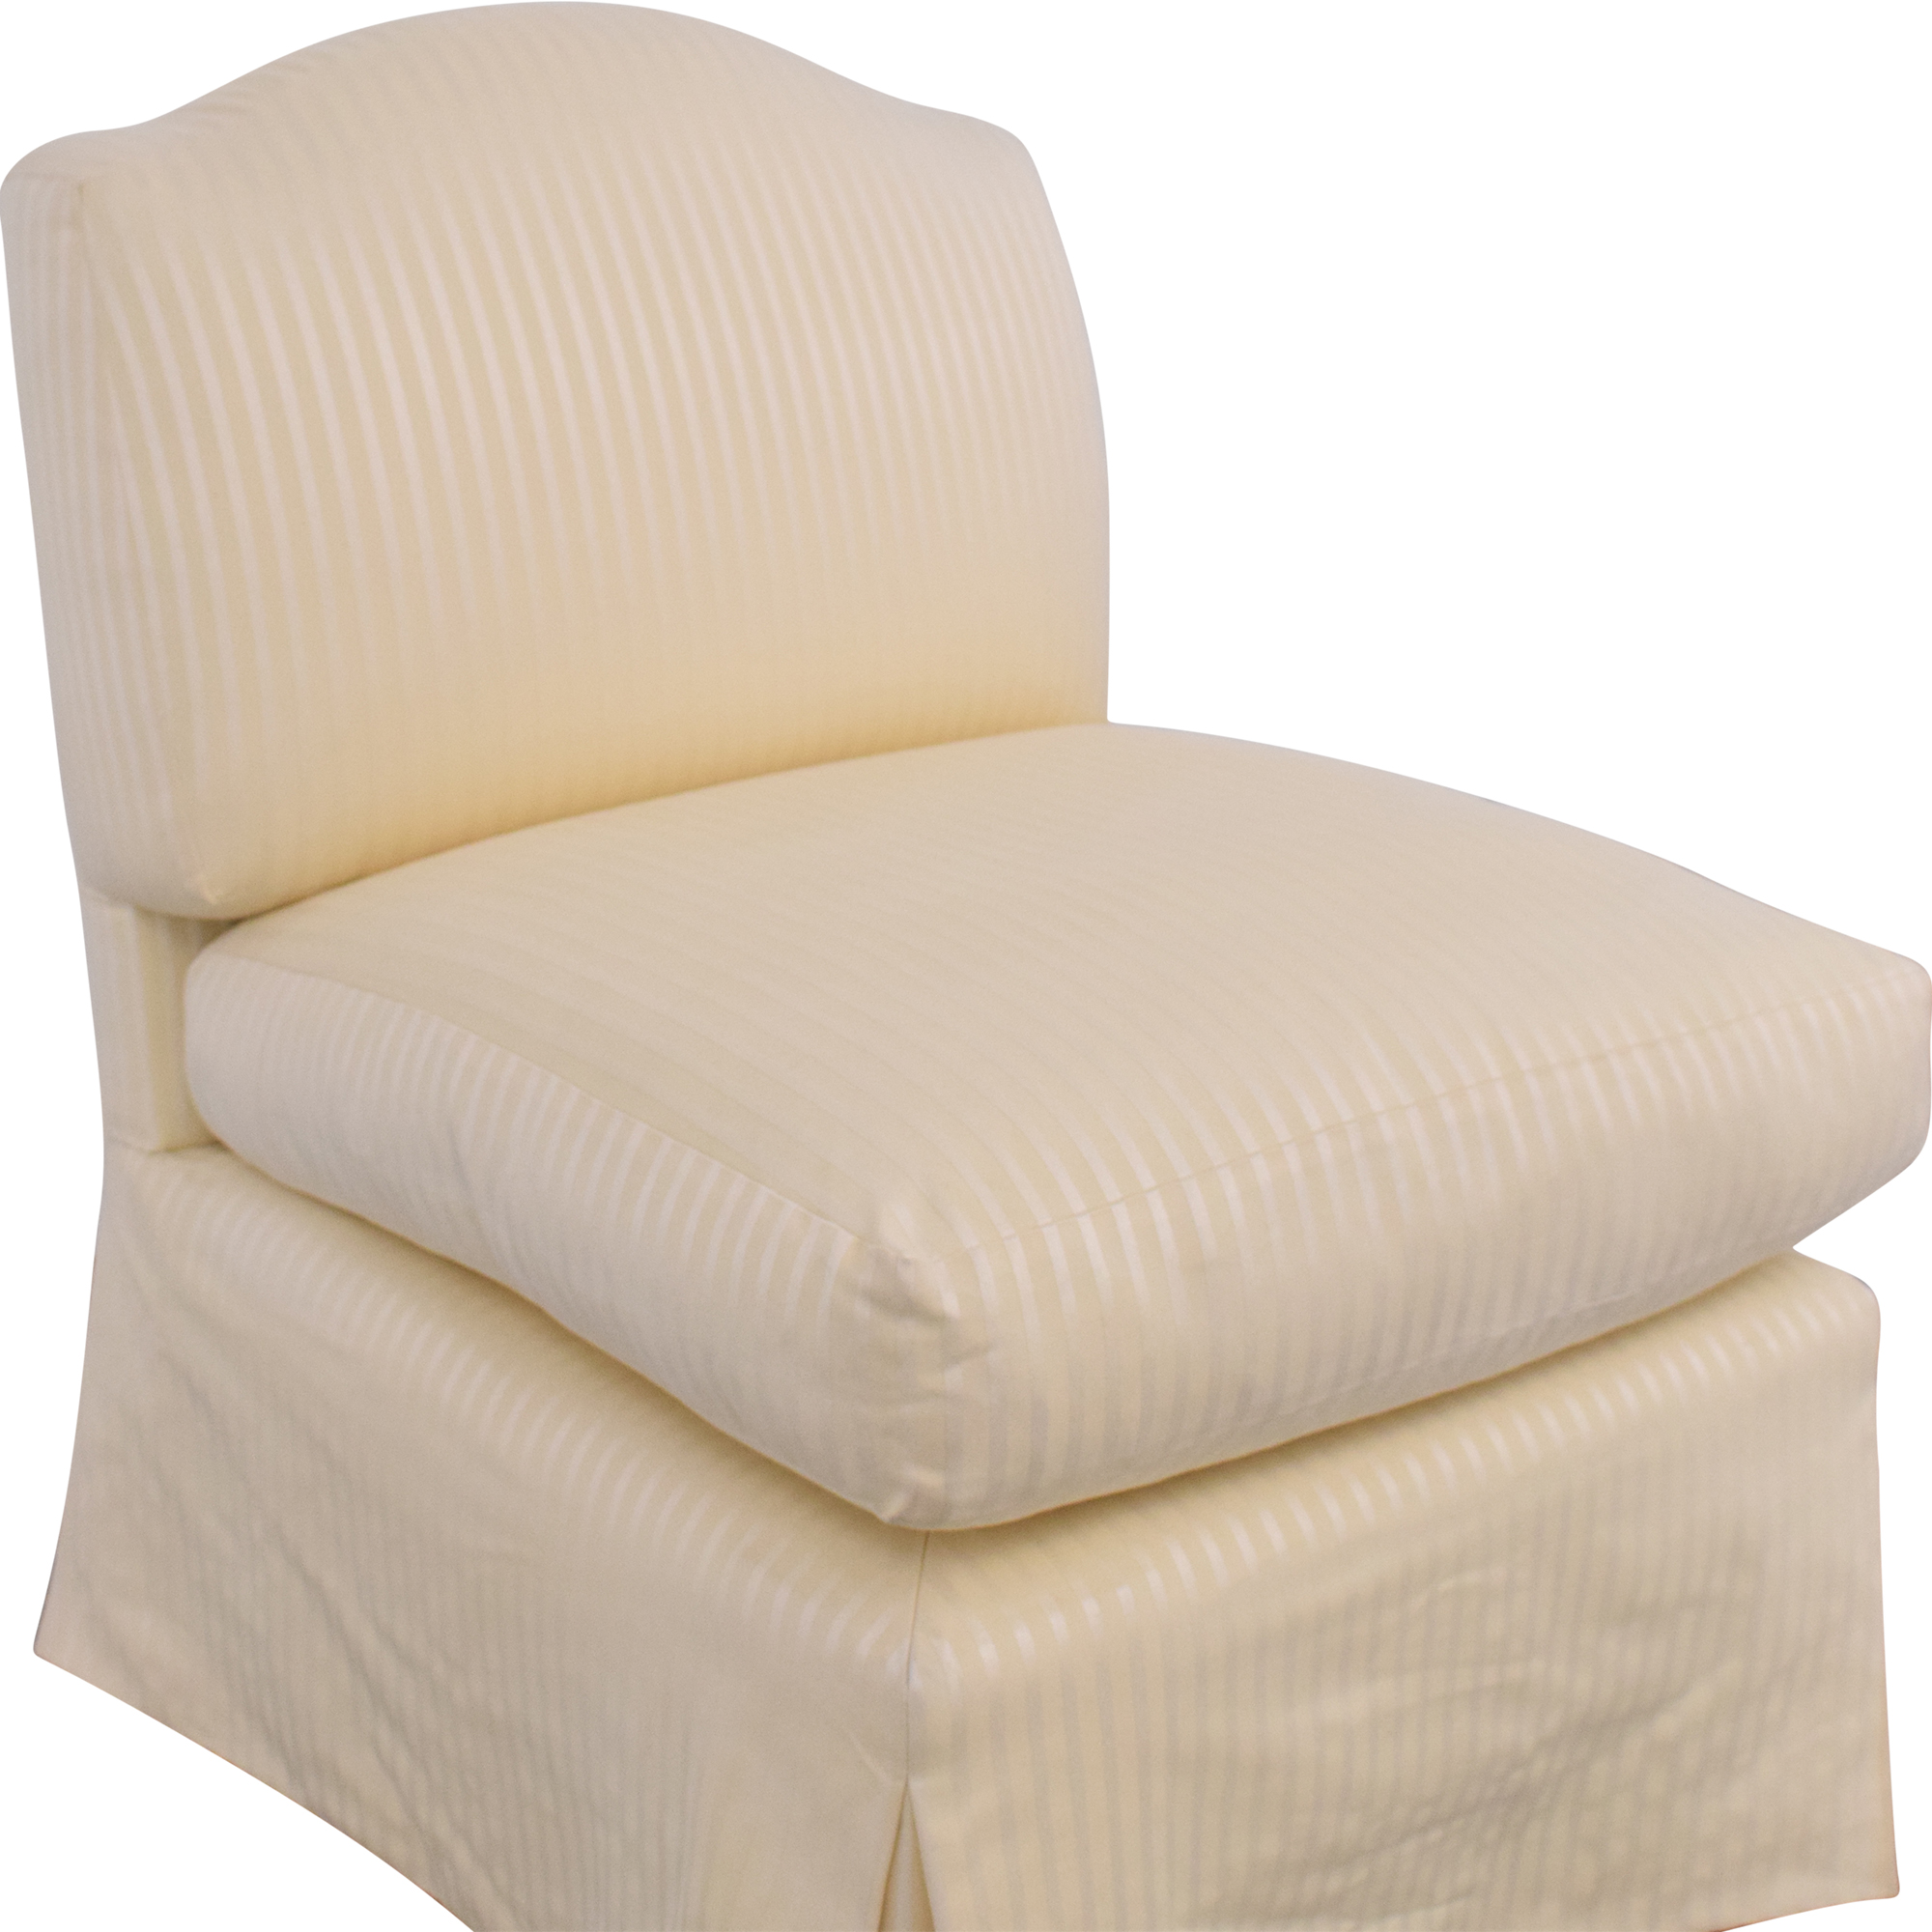 Slipcover Accent Chair for sale